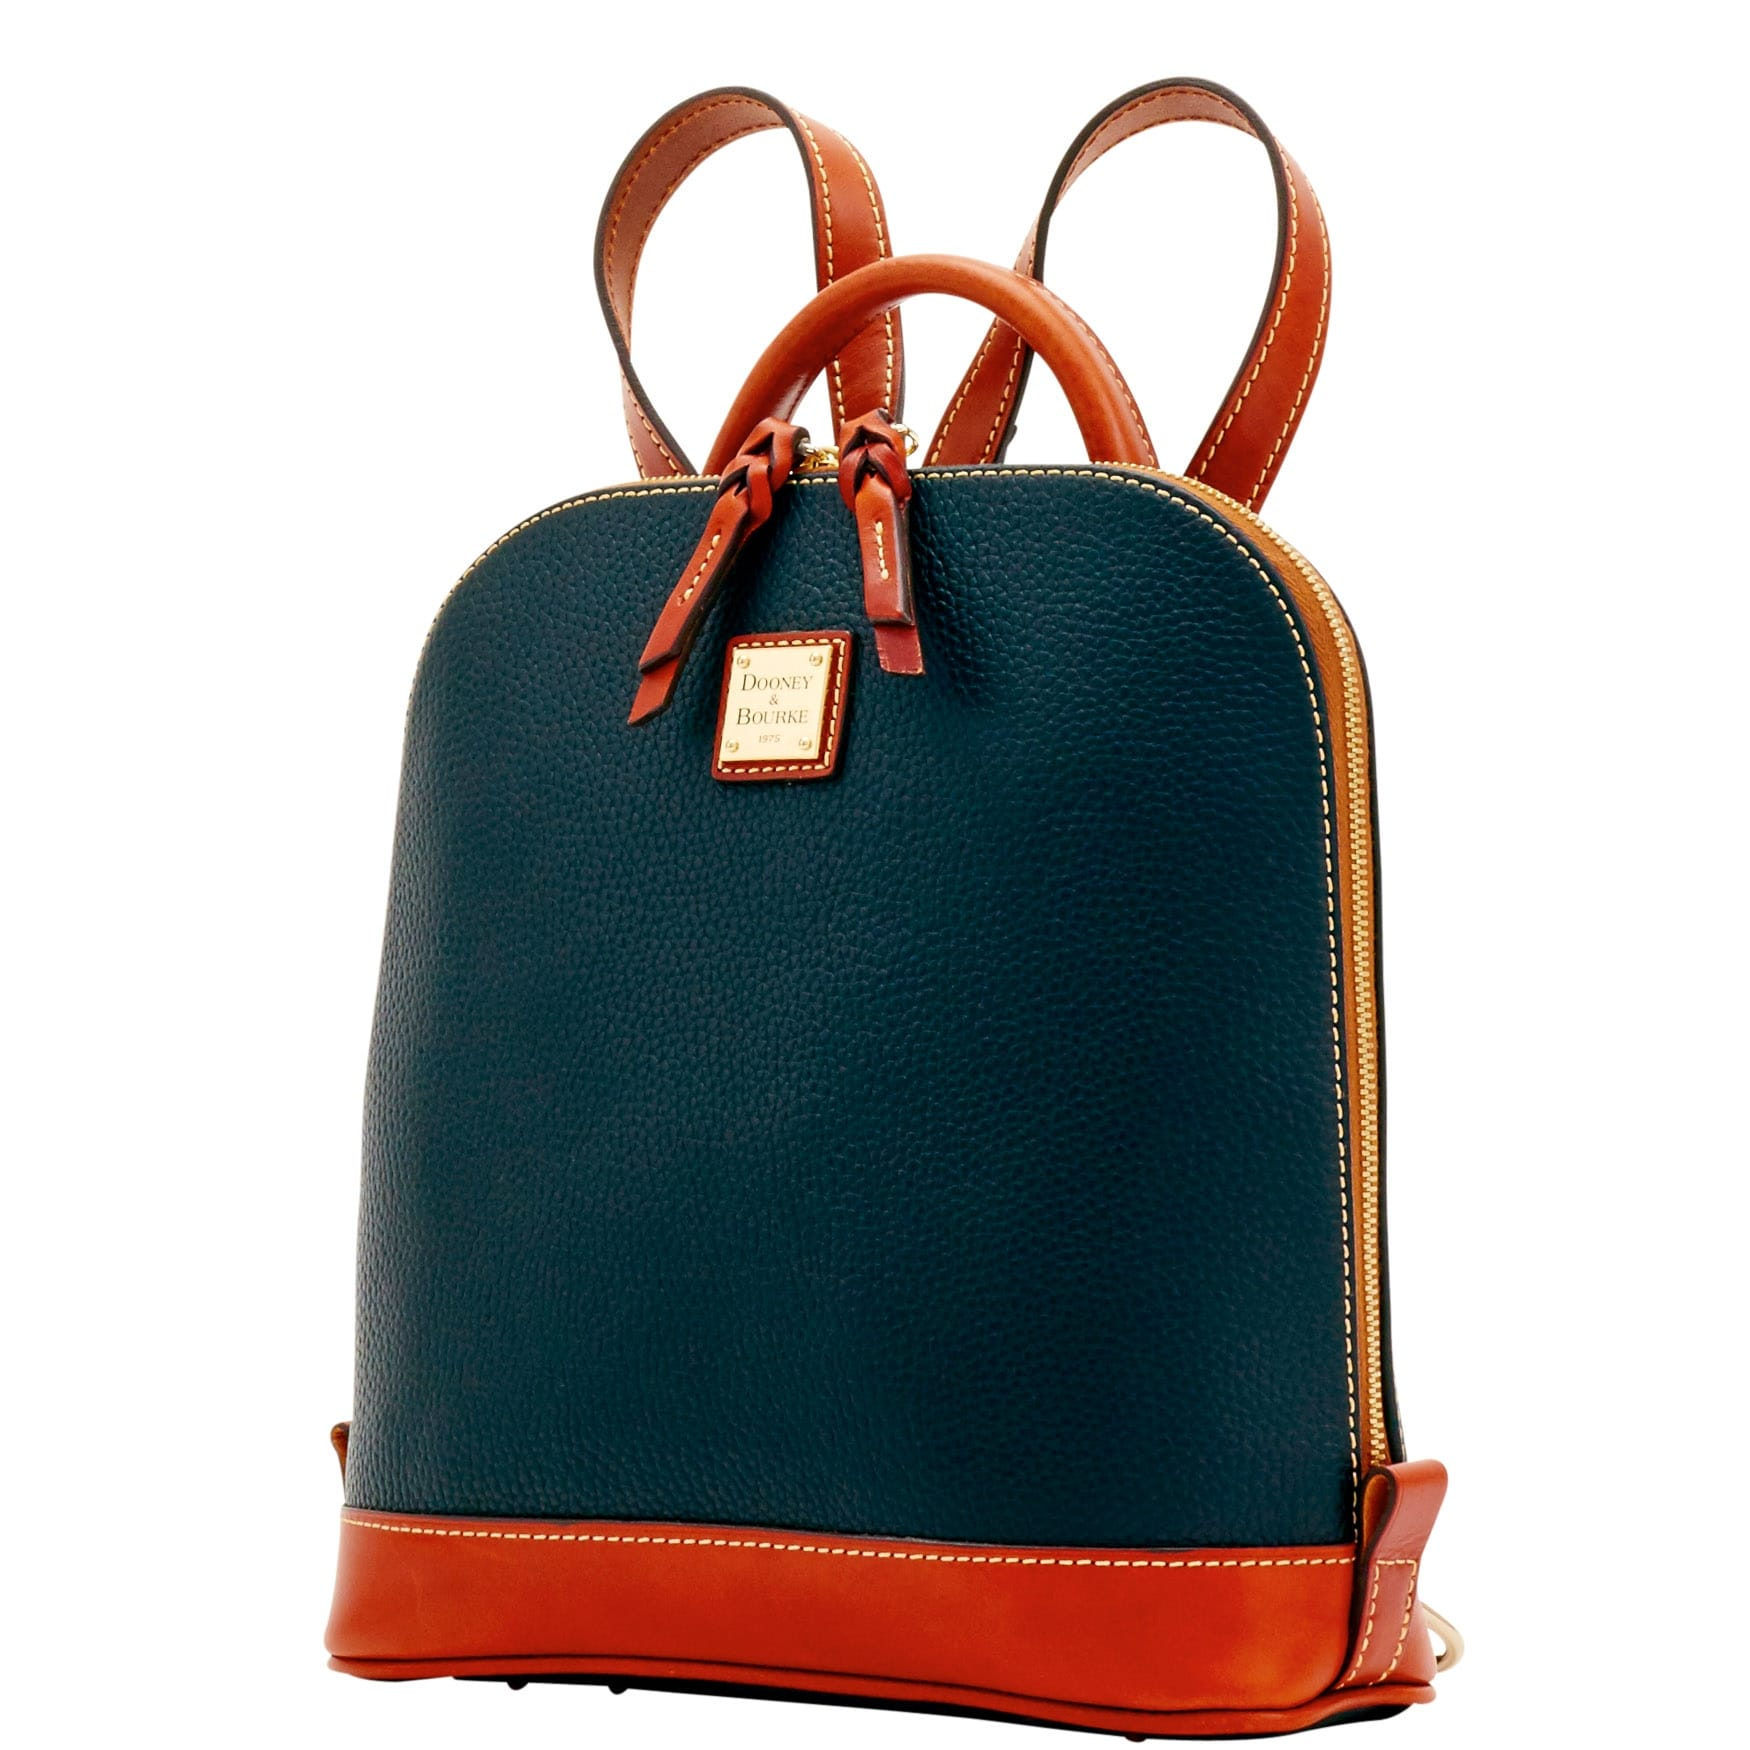 9f9bc2cce3 Dooney   Bourke Pebble Grain Zip Pod Backpack (Introduced by Dooney   Bourke  at  268 in May 2017)